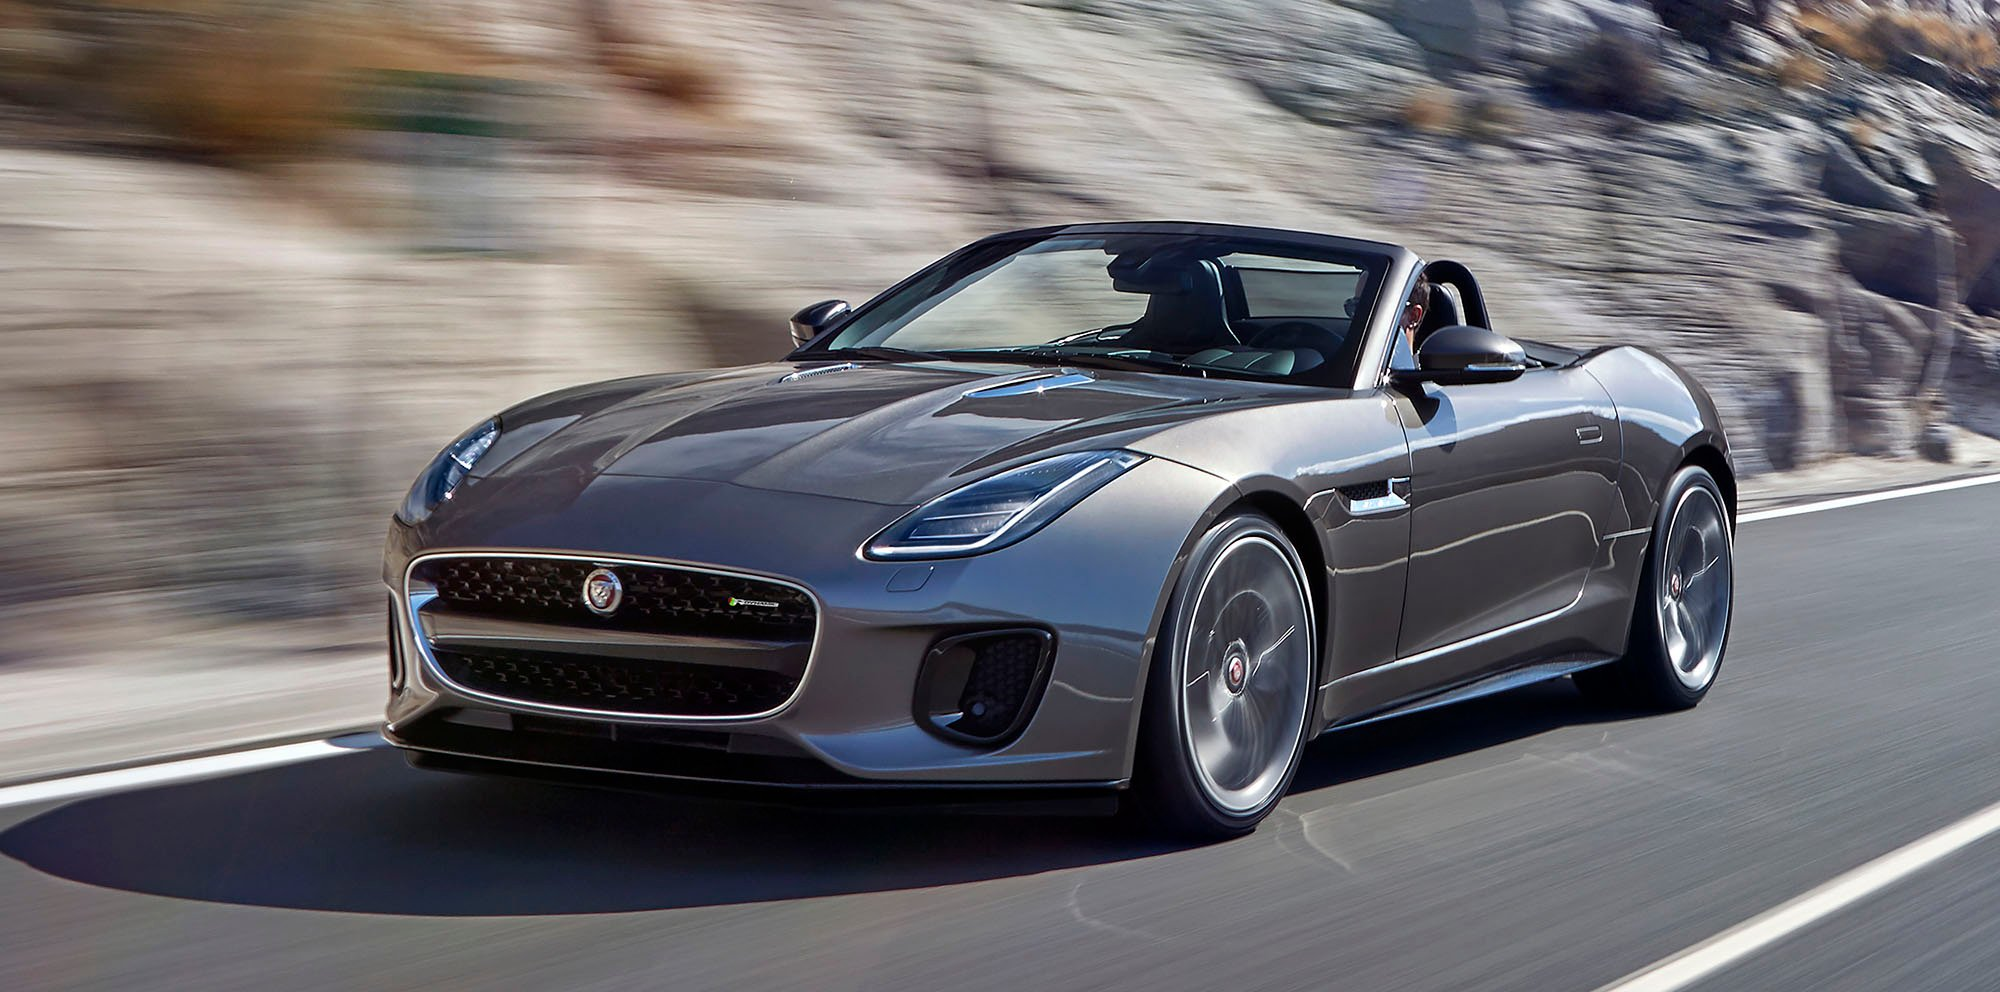 2017 jaguar f type facelift unveiled with new 400 sport r dynamic models photos 1 of 9. Black Bedroom Furniture Sets. Home Design Ideas